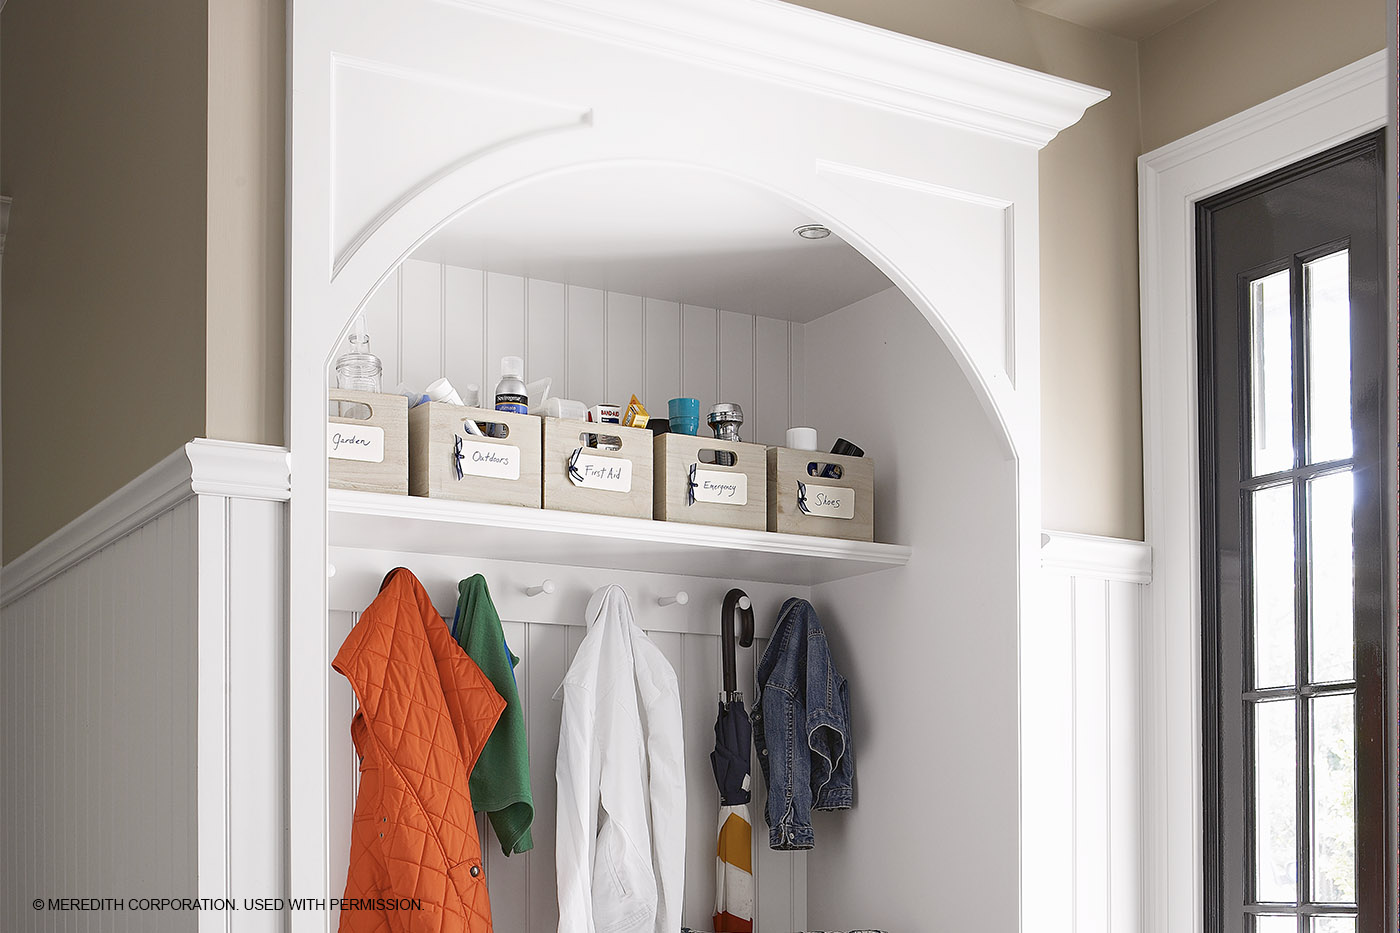 mudroom design ideas for better storage - Mudroom Design Ideas